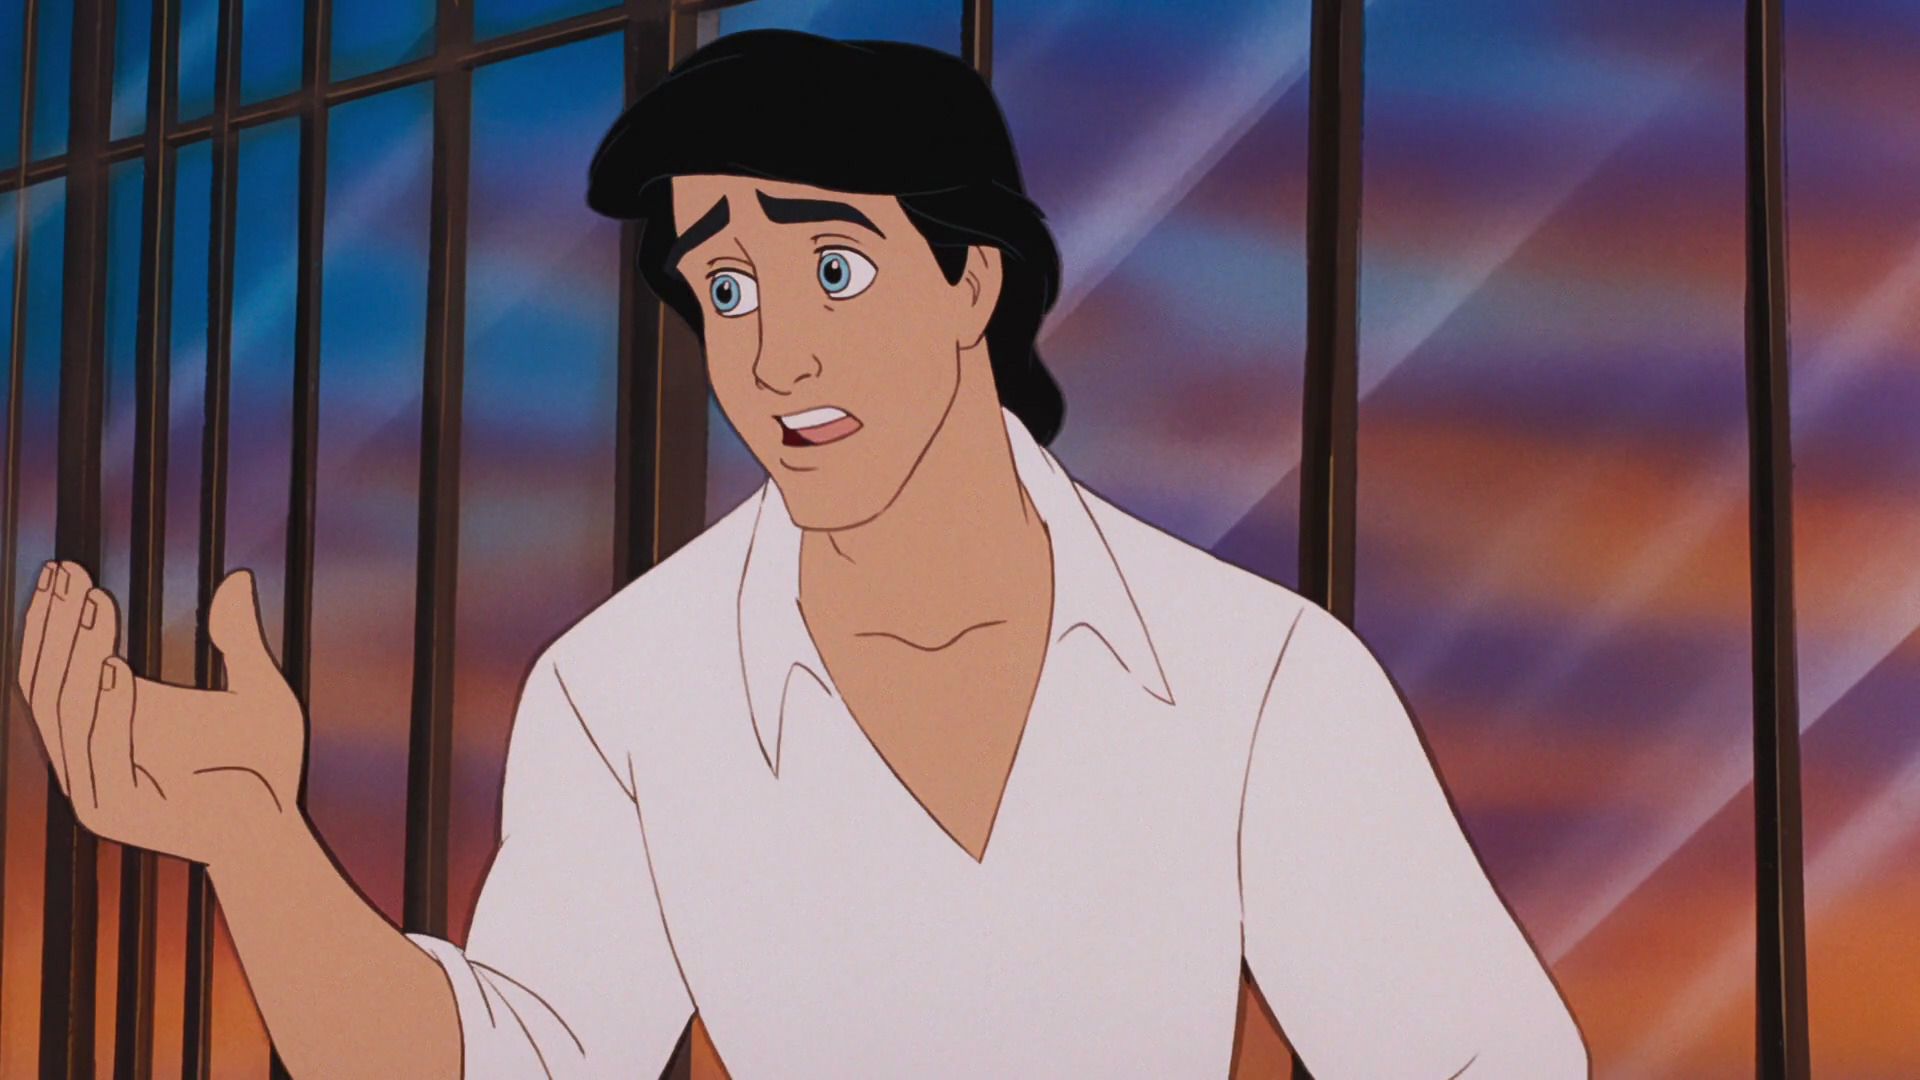 prince eric personnage petite sirene disney film